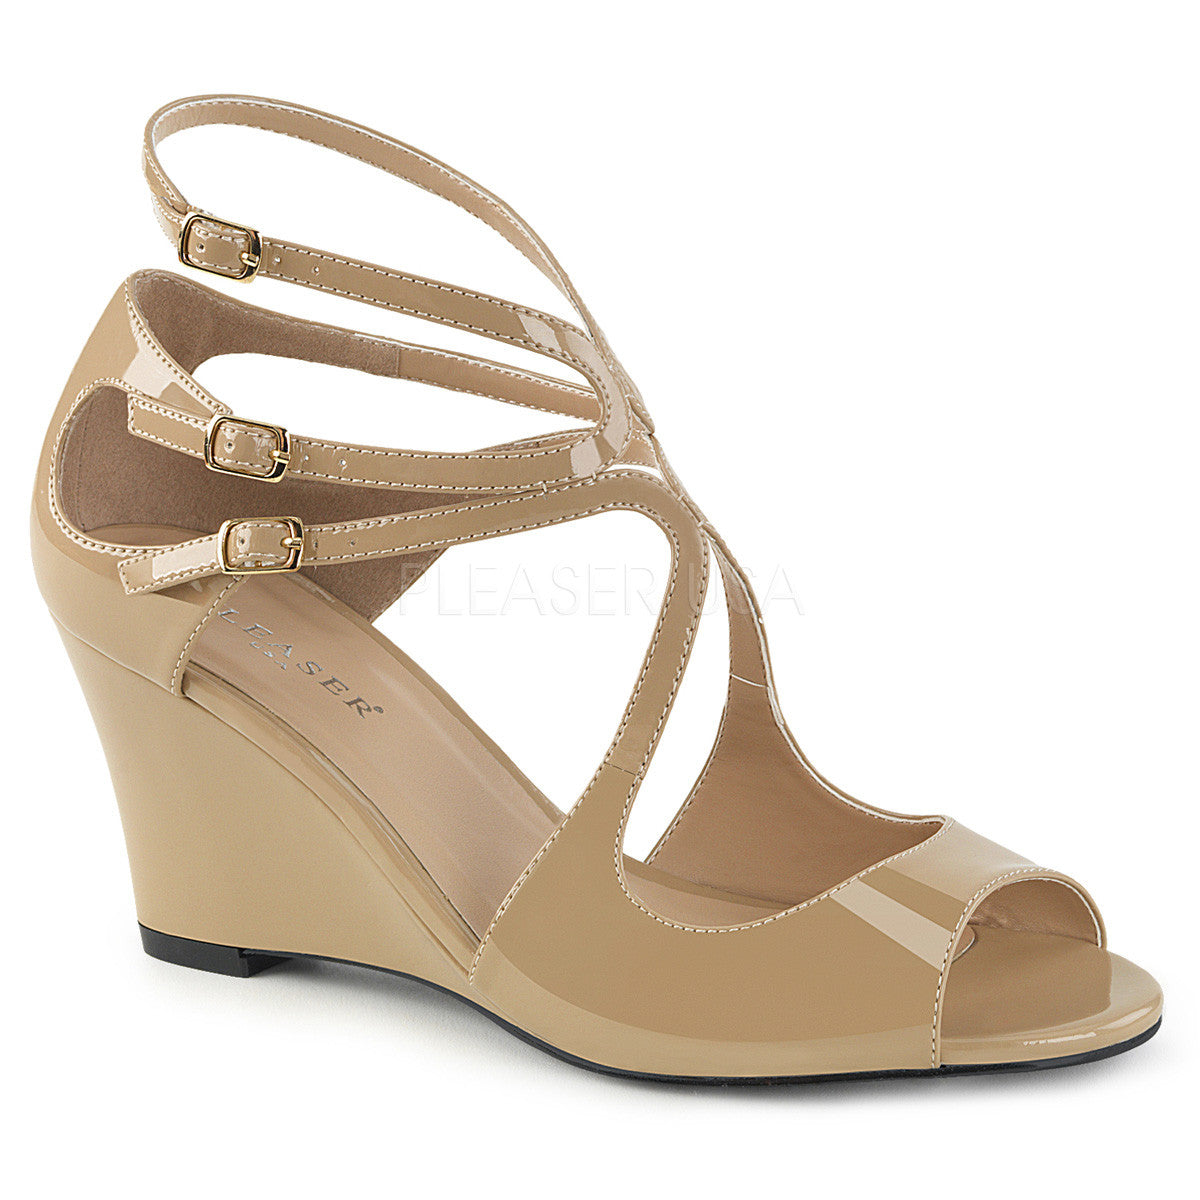 04ea3525cac3 Pleaser Pink Label KIMBERLY-04 Cream Pat Wedge Sandals - Shoecup.com